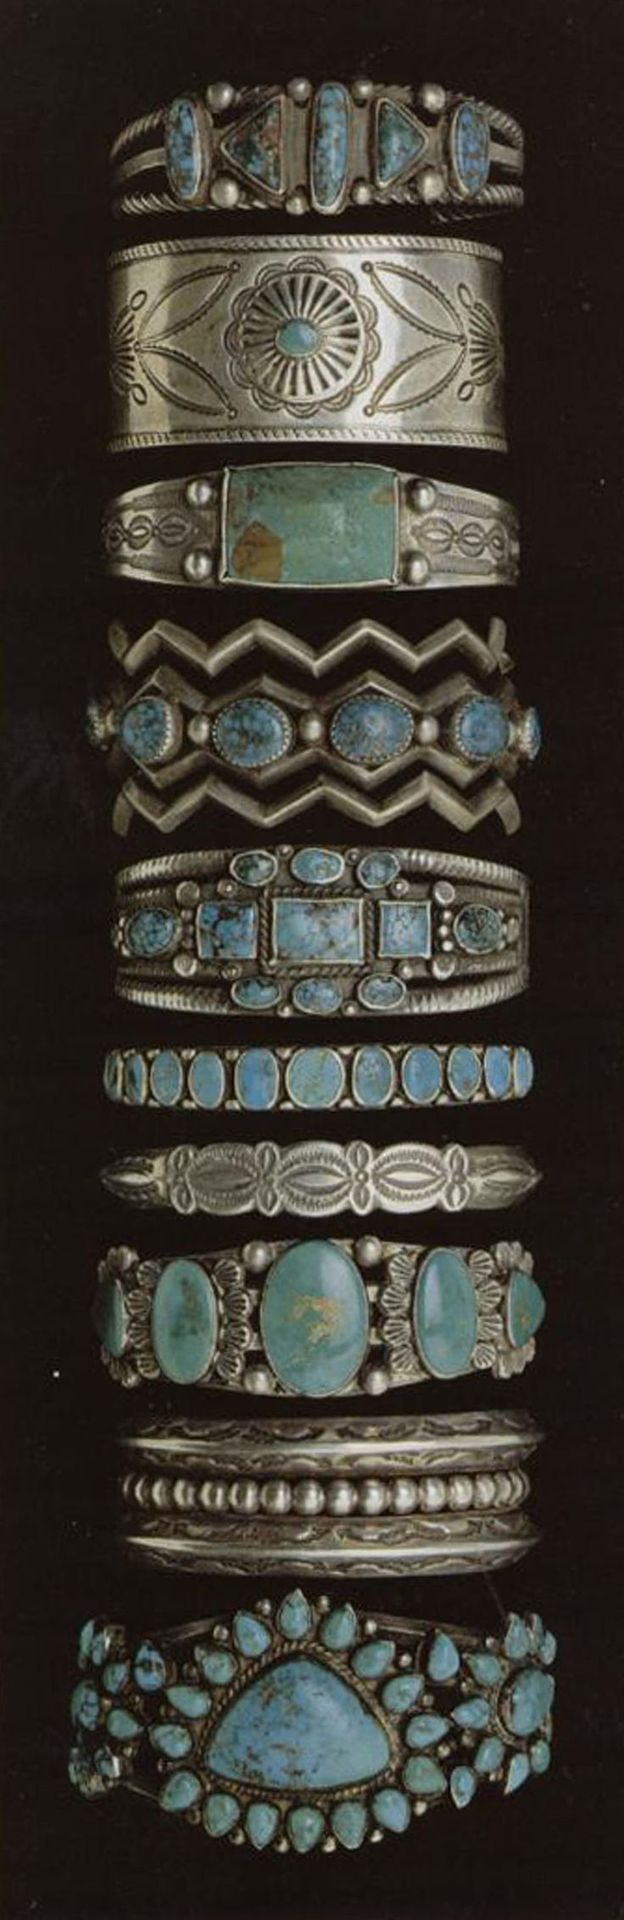 Navajo bracelets from the Millicent Rogers collection(via Pinterest)